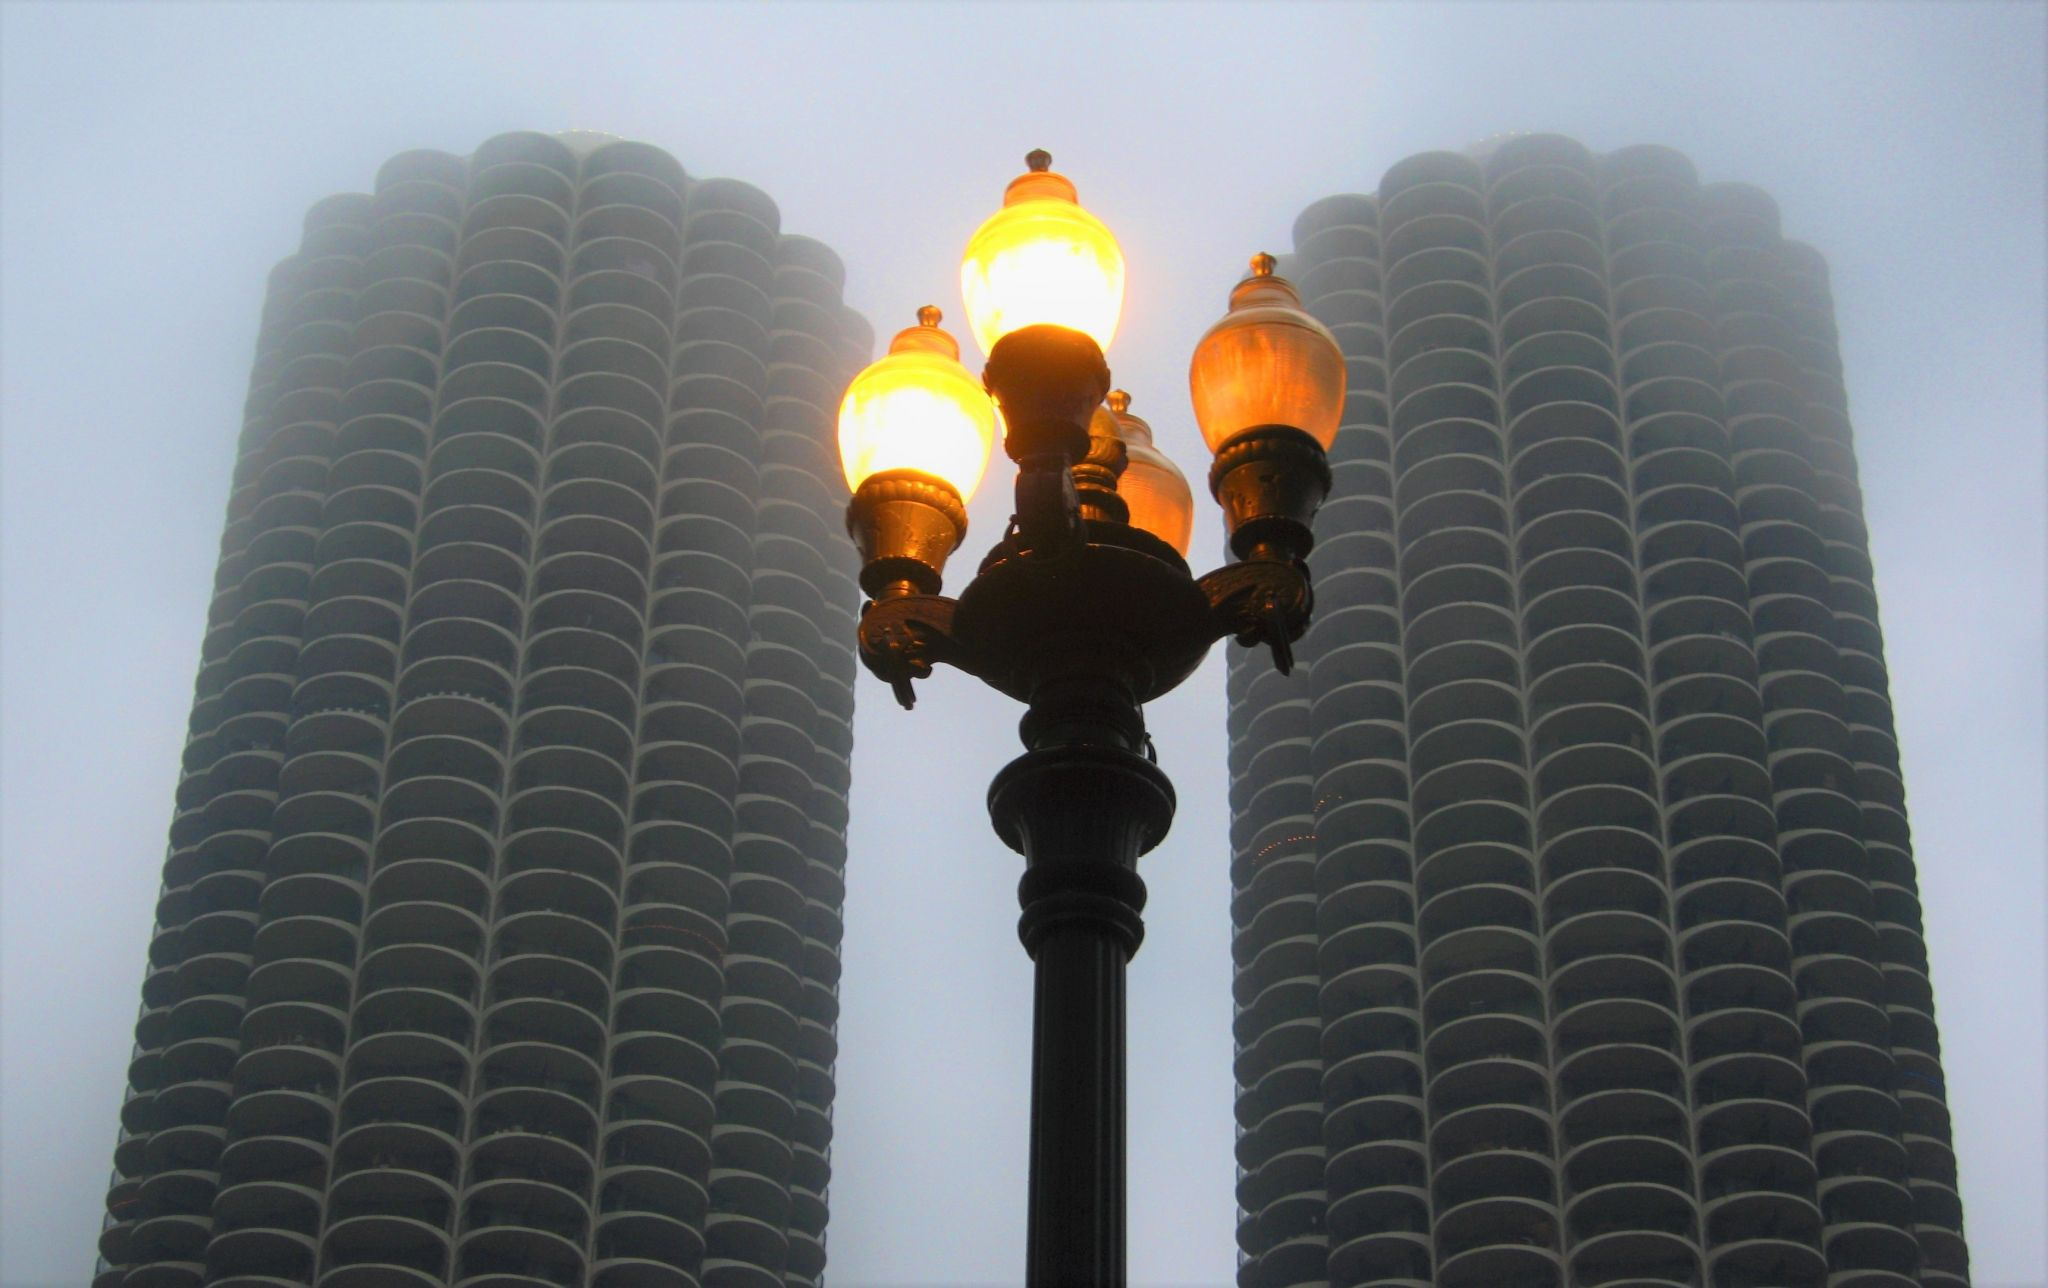 Marina City from N. State St., USA